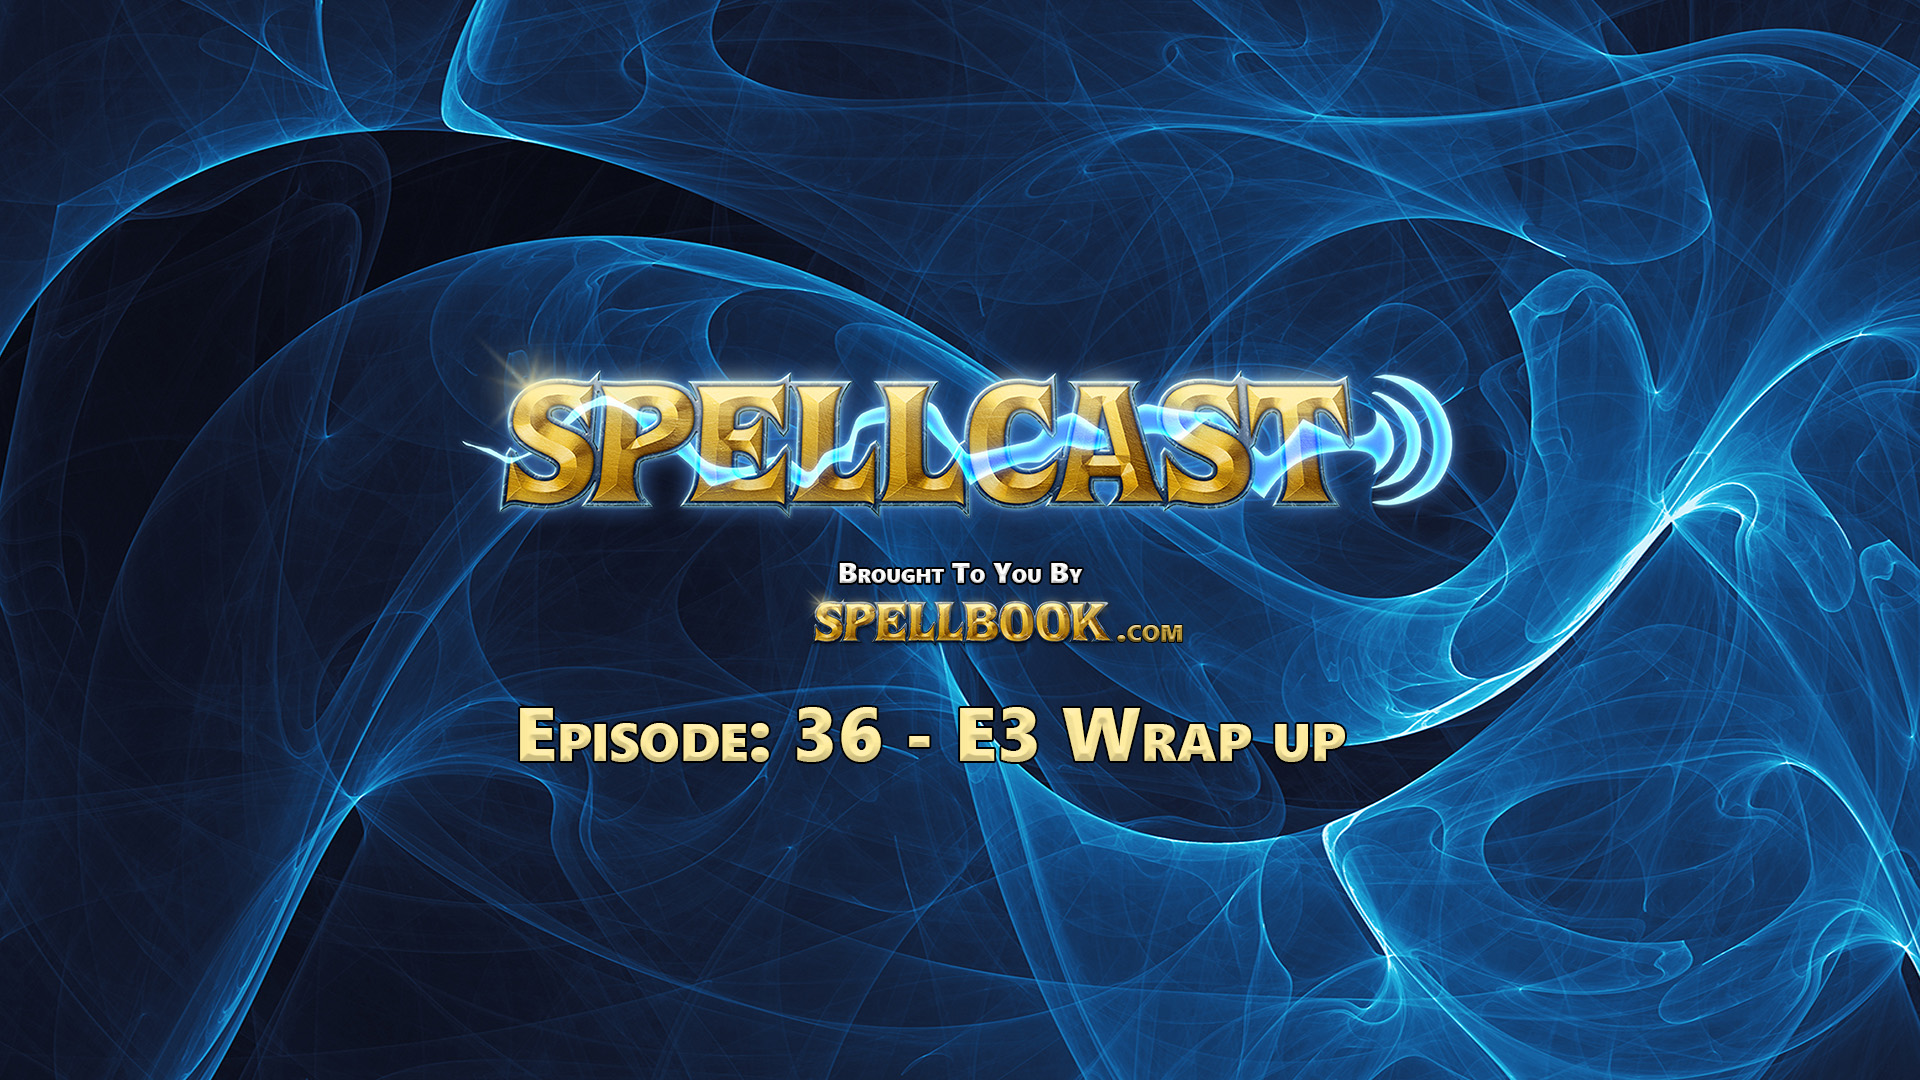 Spellcast Episode: 36 - E3 wrap up